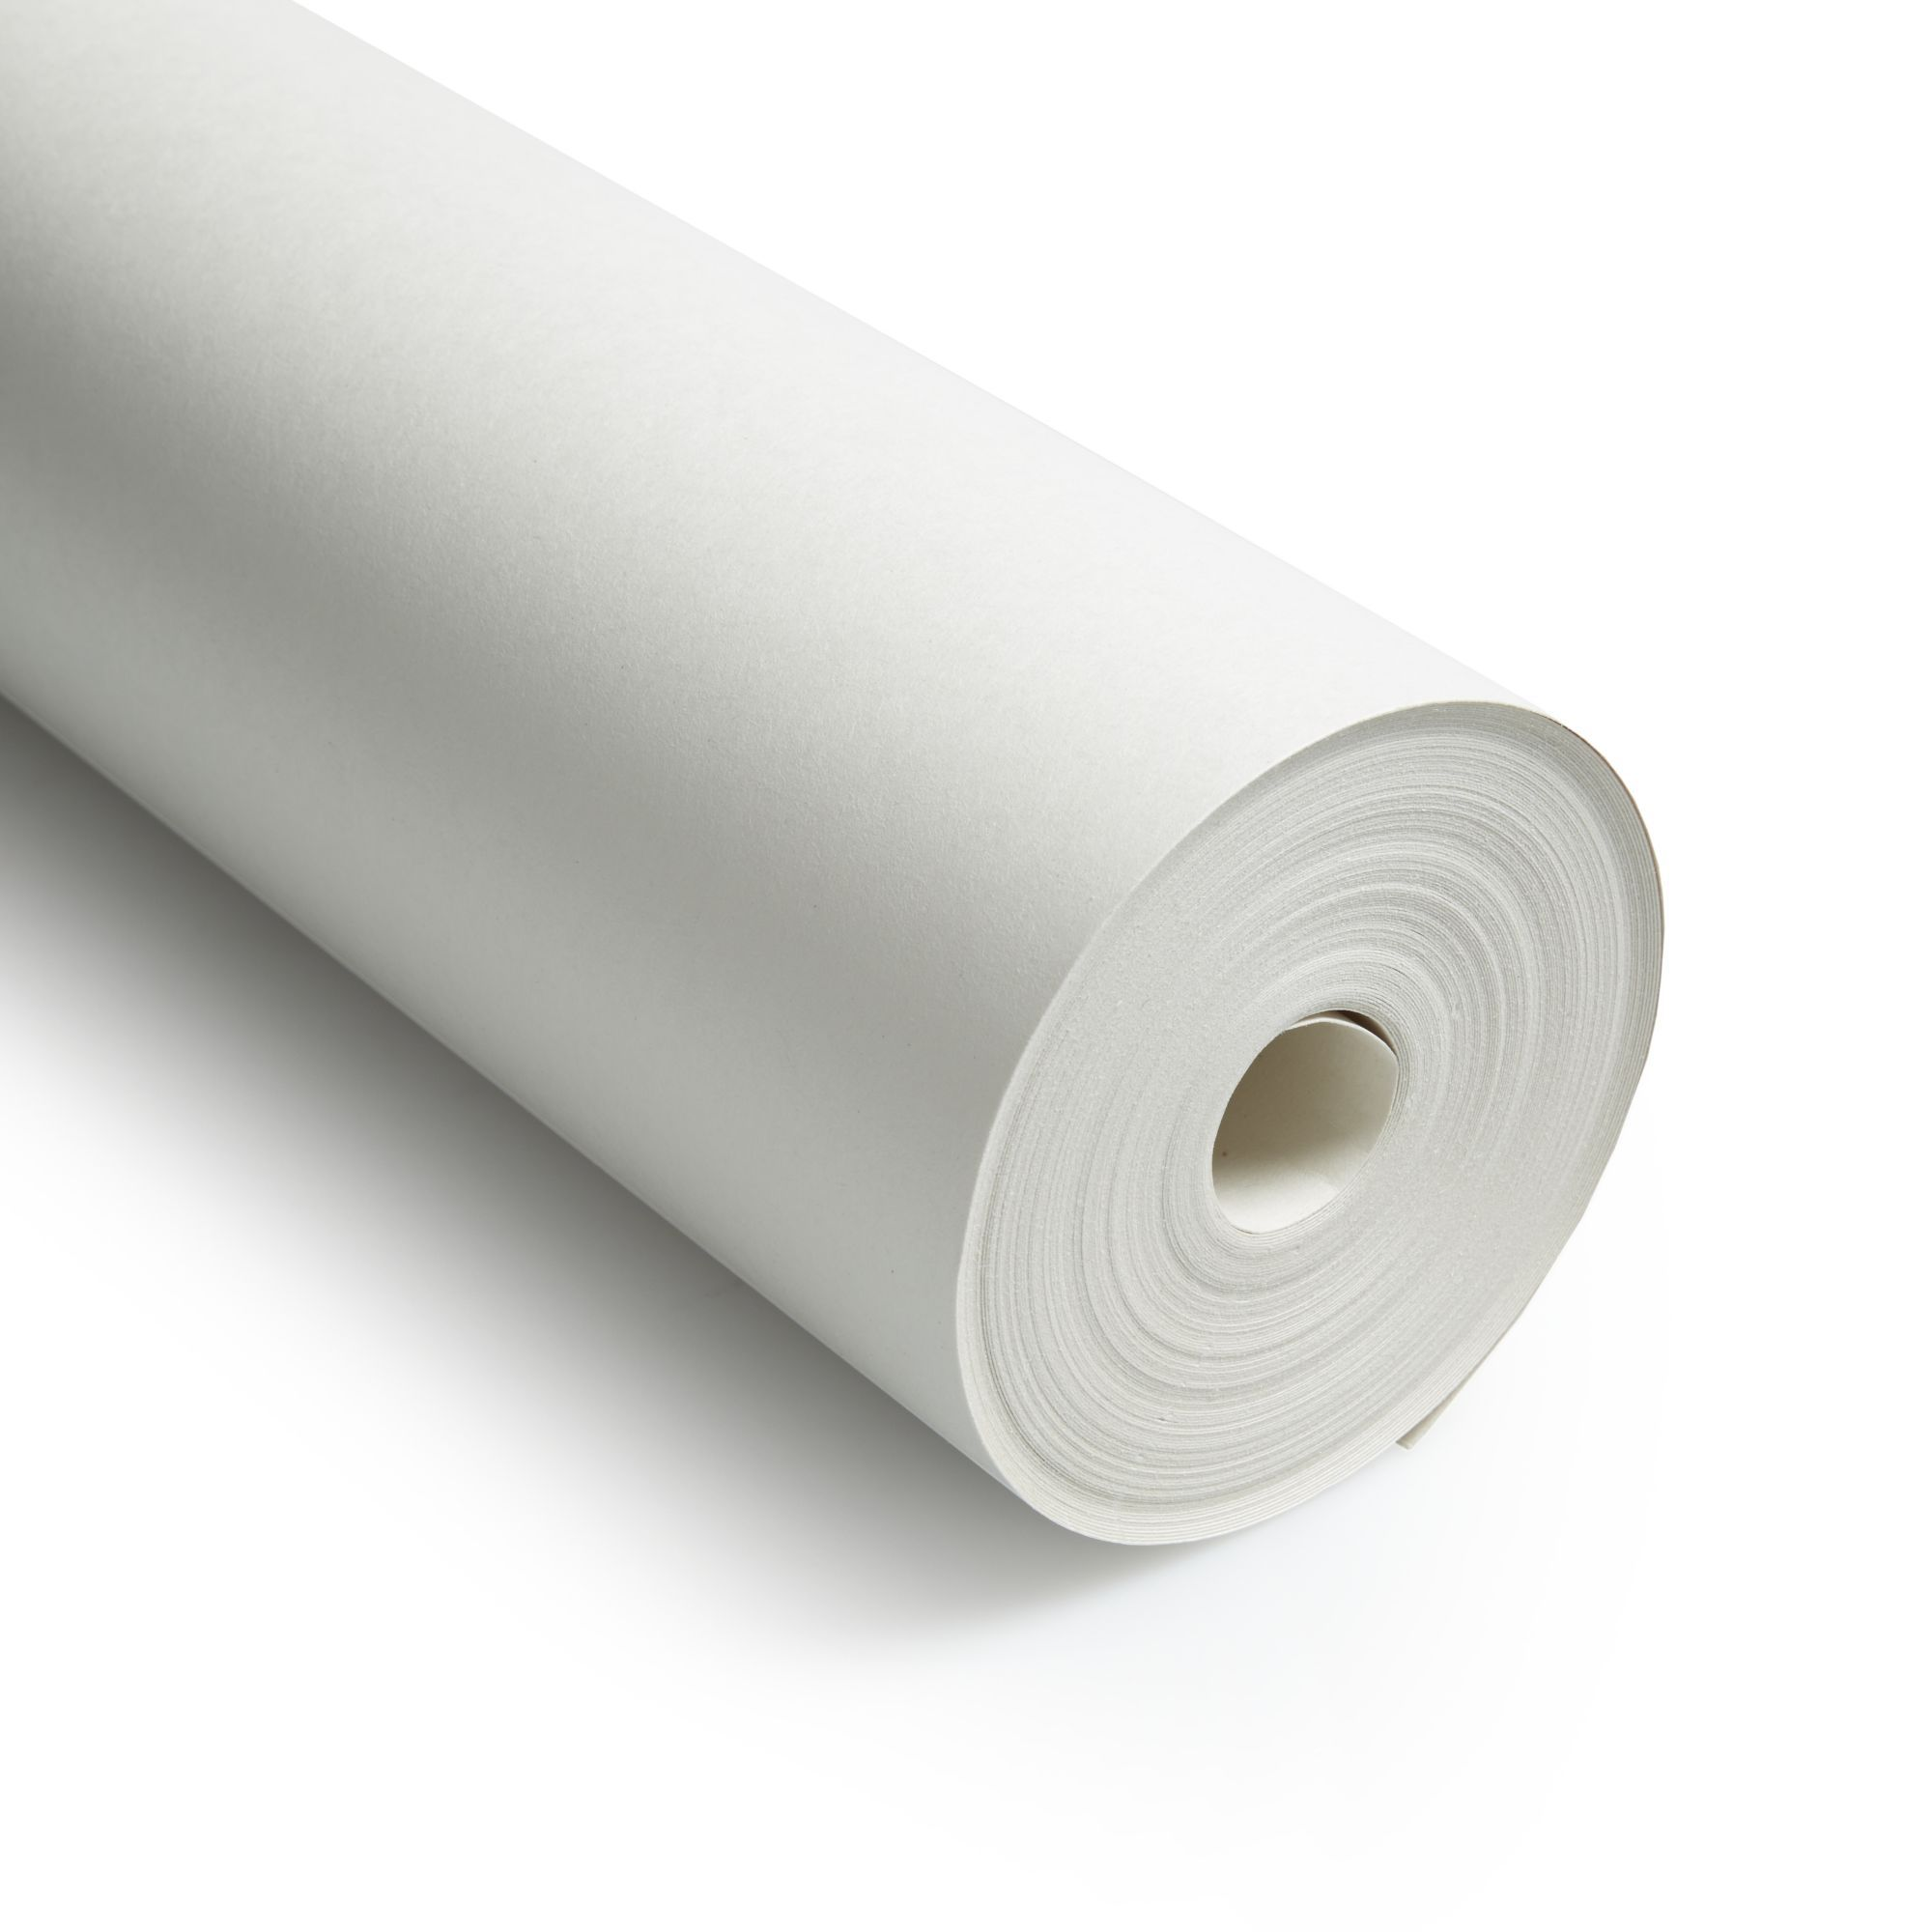 Lining Paper 1400 Grade Full Roll by Erfurt Forestry Business ...